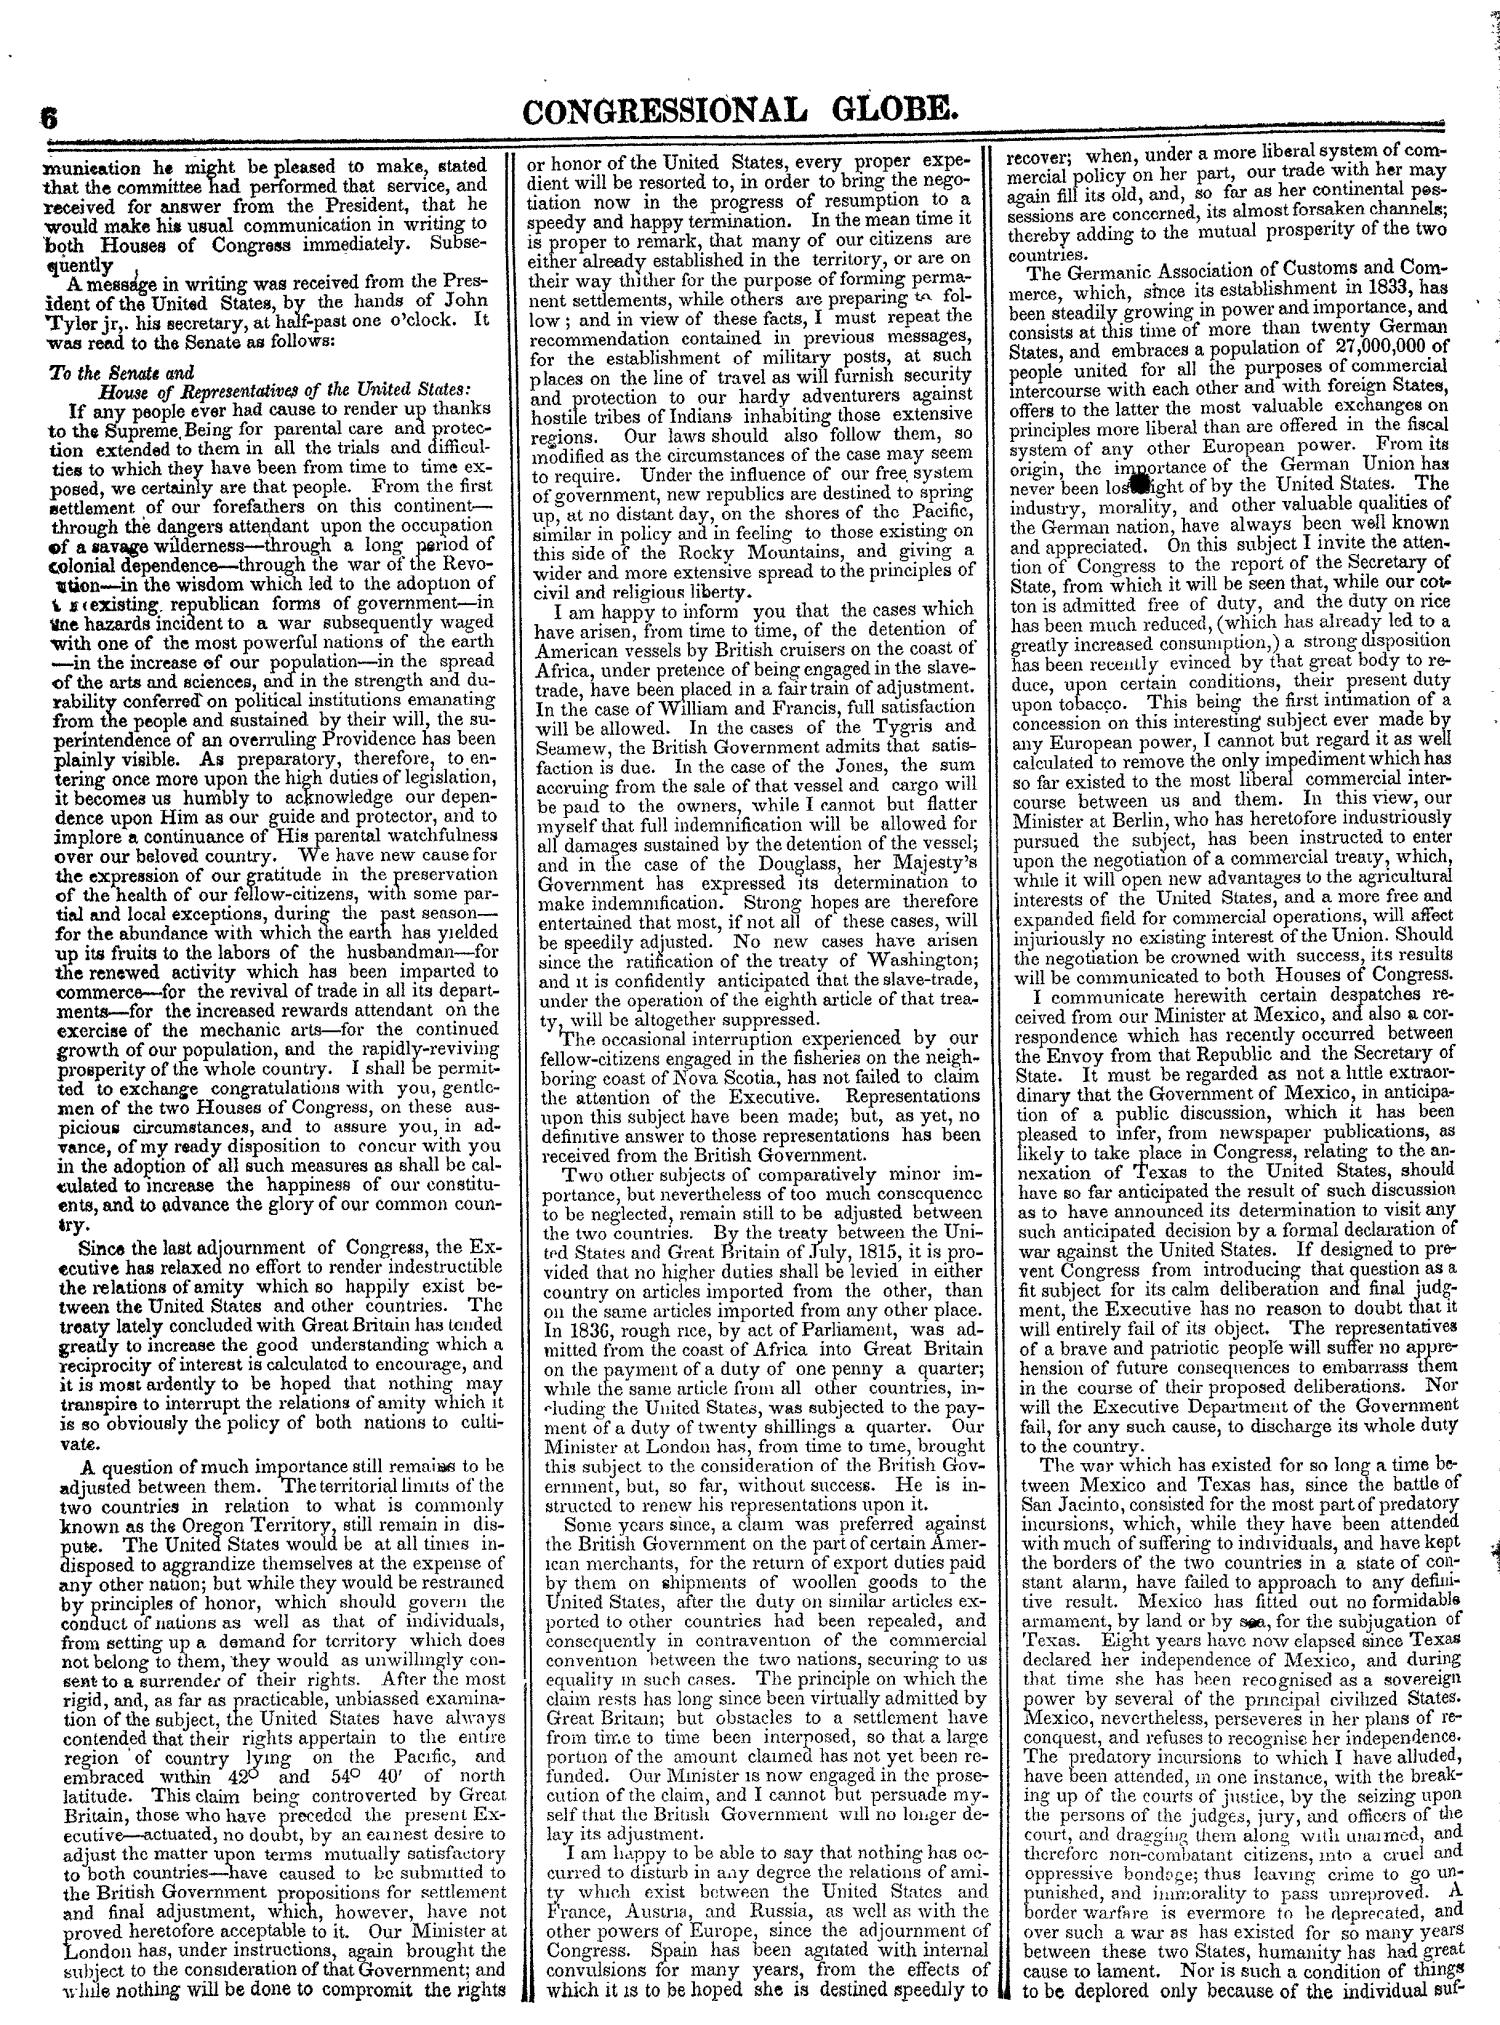 The Congressional Globe, Volume 13, Part 1: Twenty-Eighth Congress, First Session                                                                                                      6